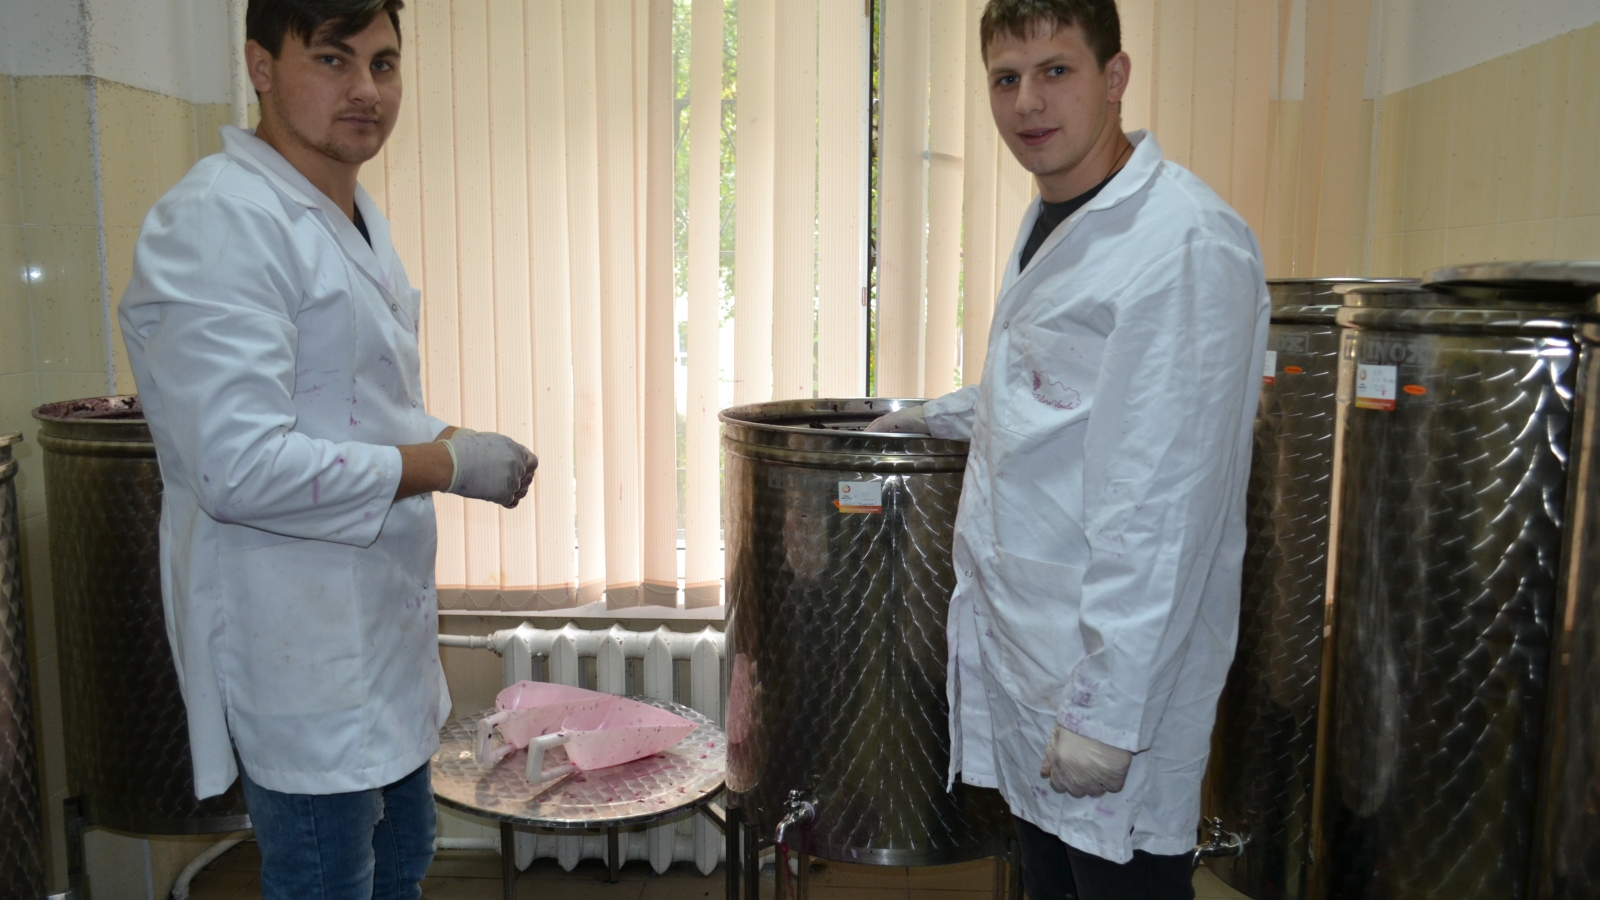 Students of the Oenology Department and Micro Winemaking Unit of the Technical University of Moldova